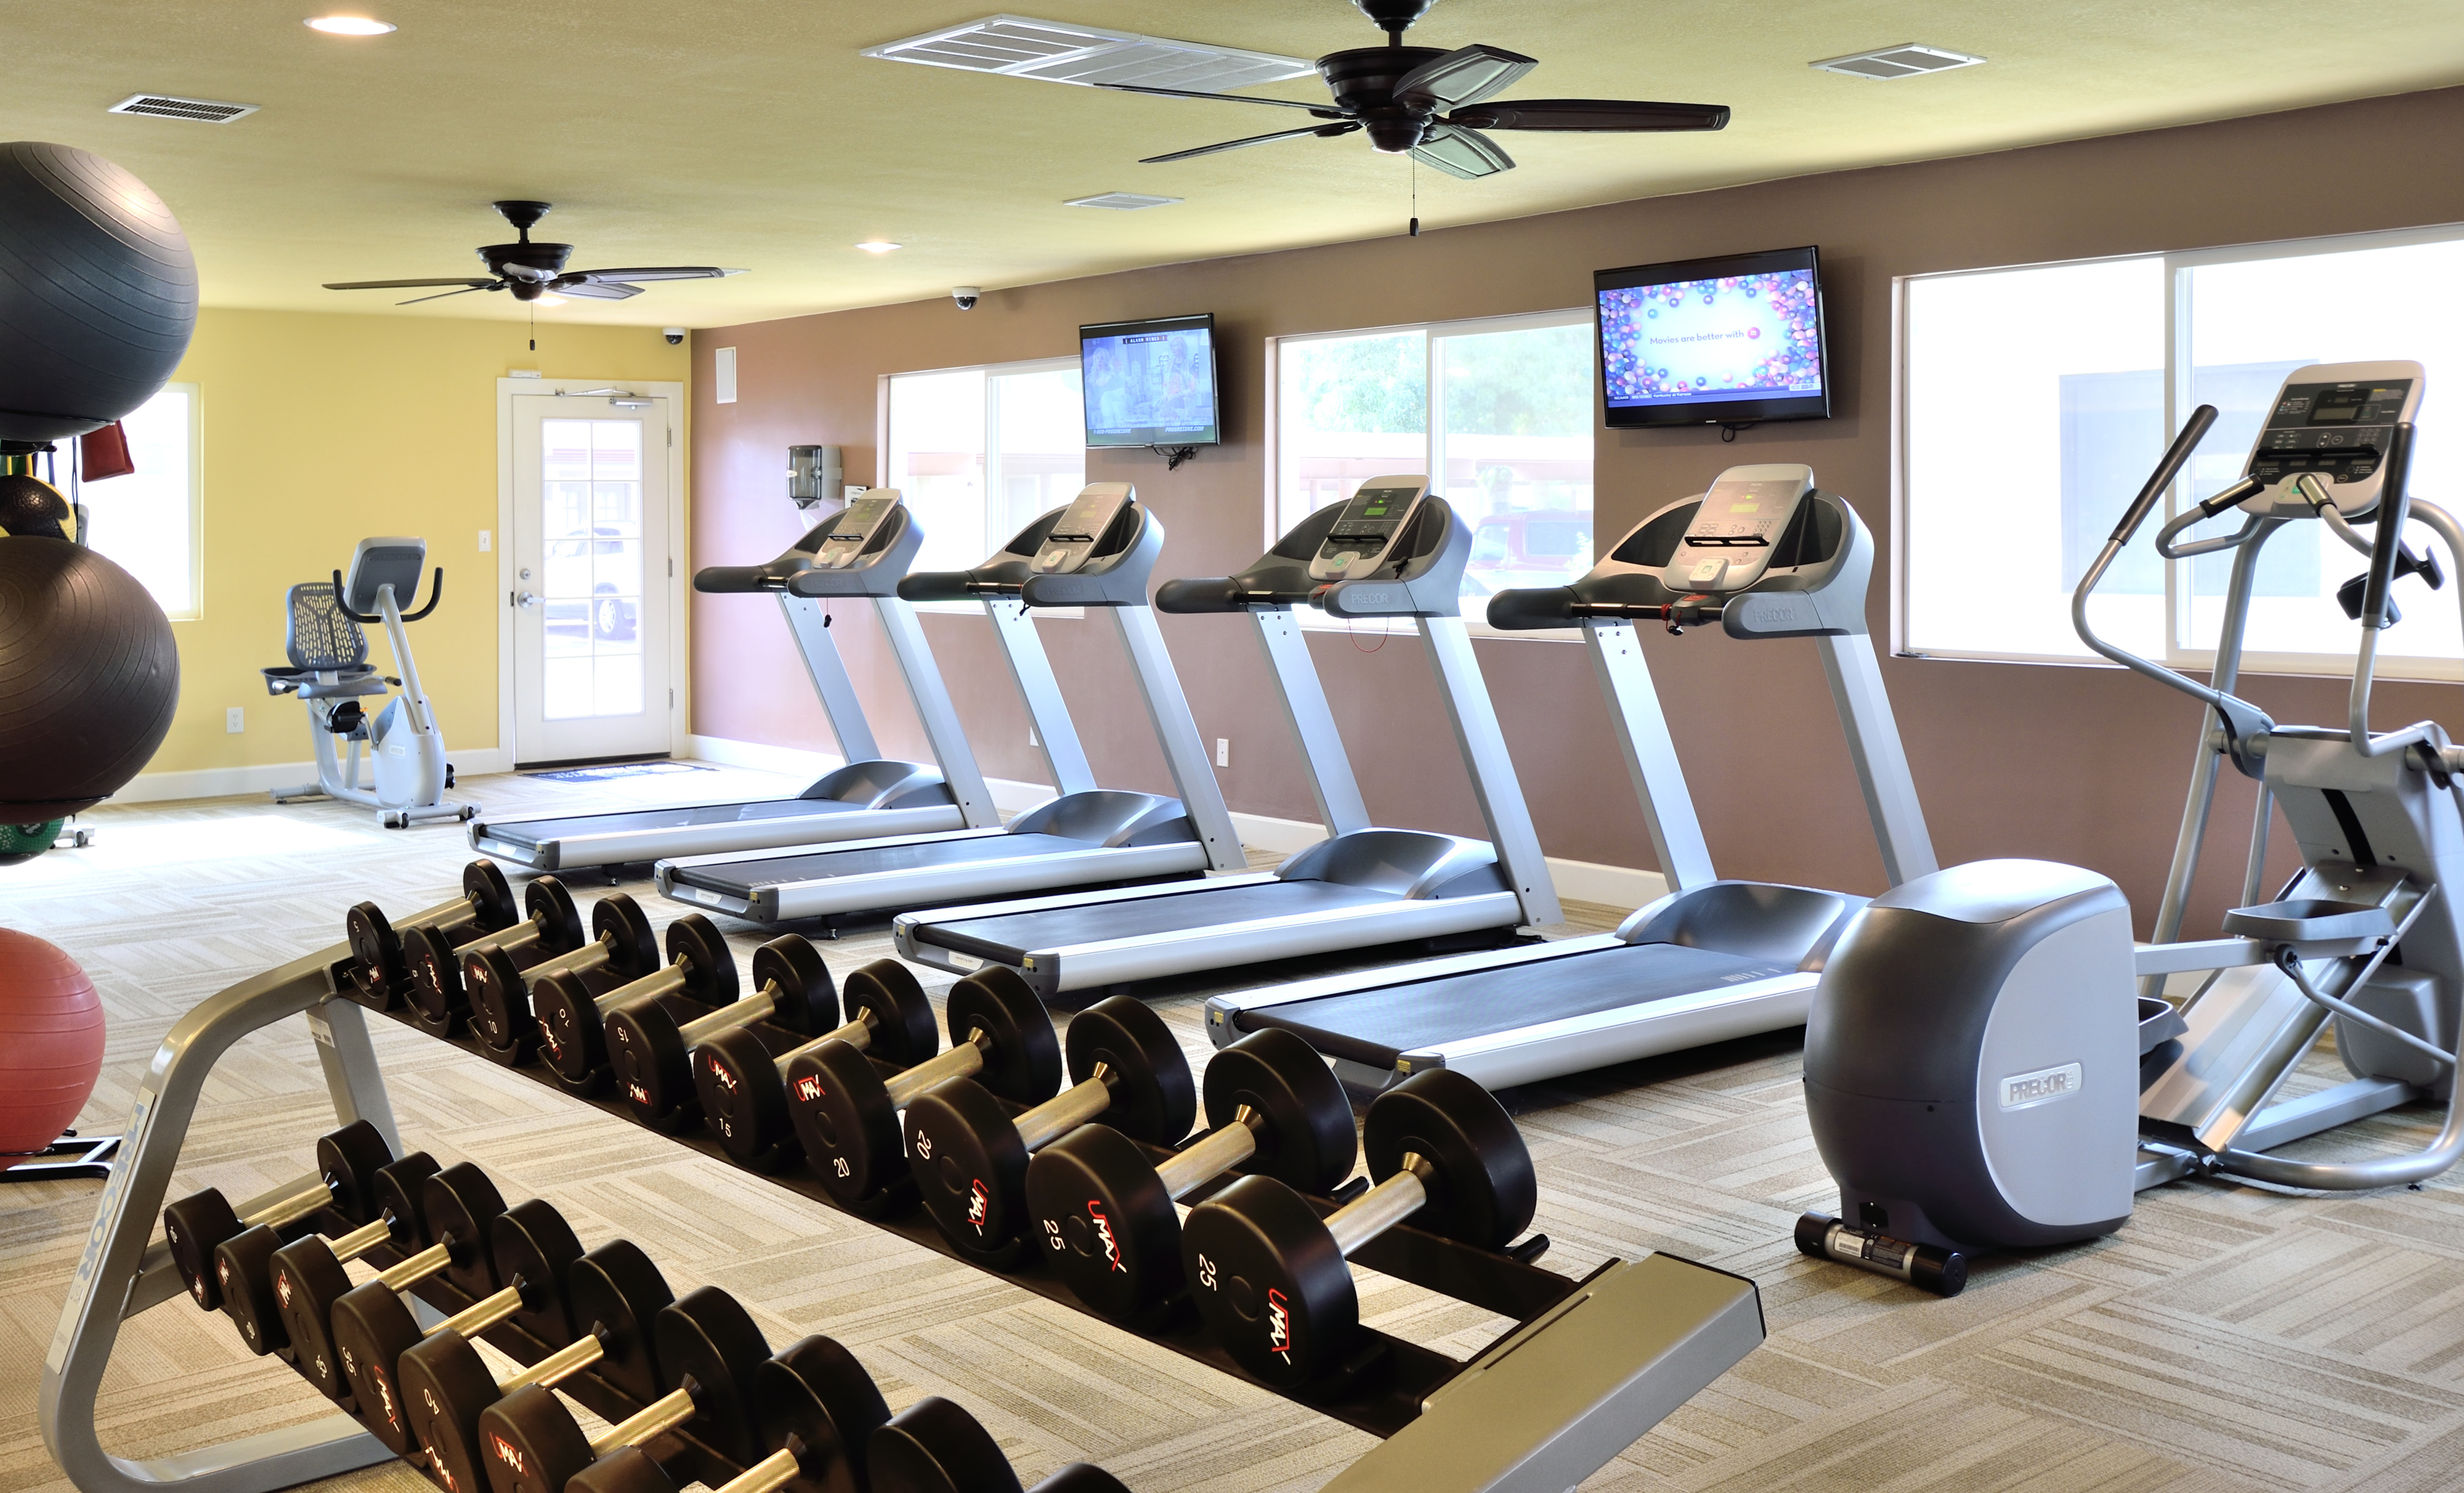 View of Fitness Center, Showing Cardio Equipment, Ceiling Fans, Flat Screen TV\'s and Weight Bench at Camelot Apartments